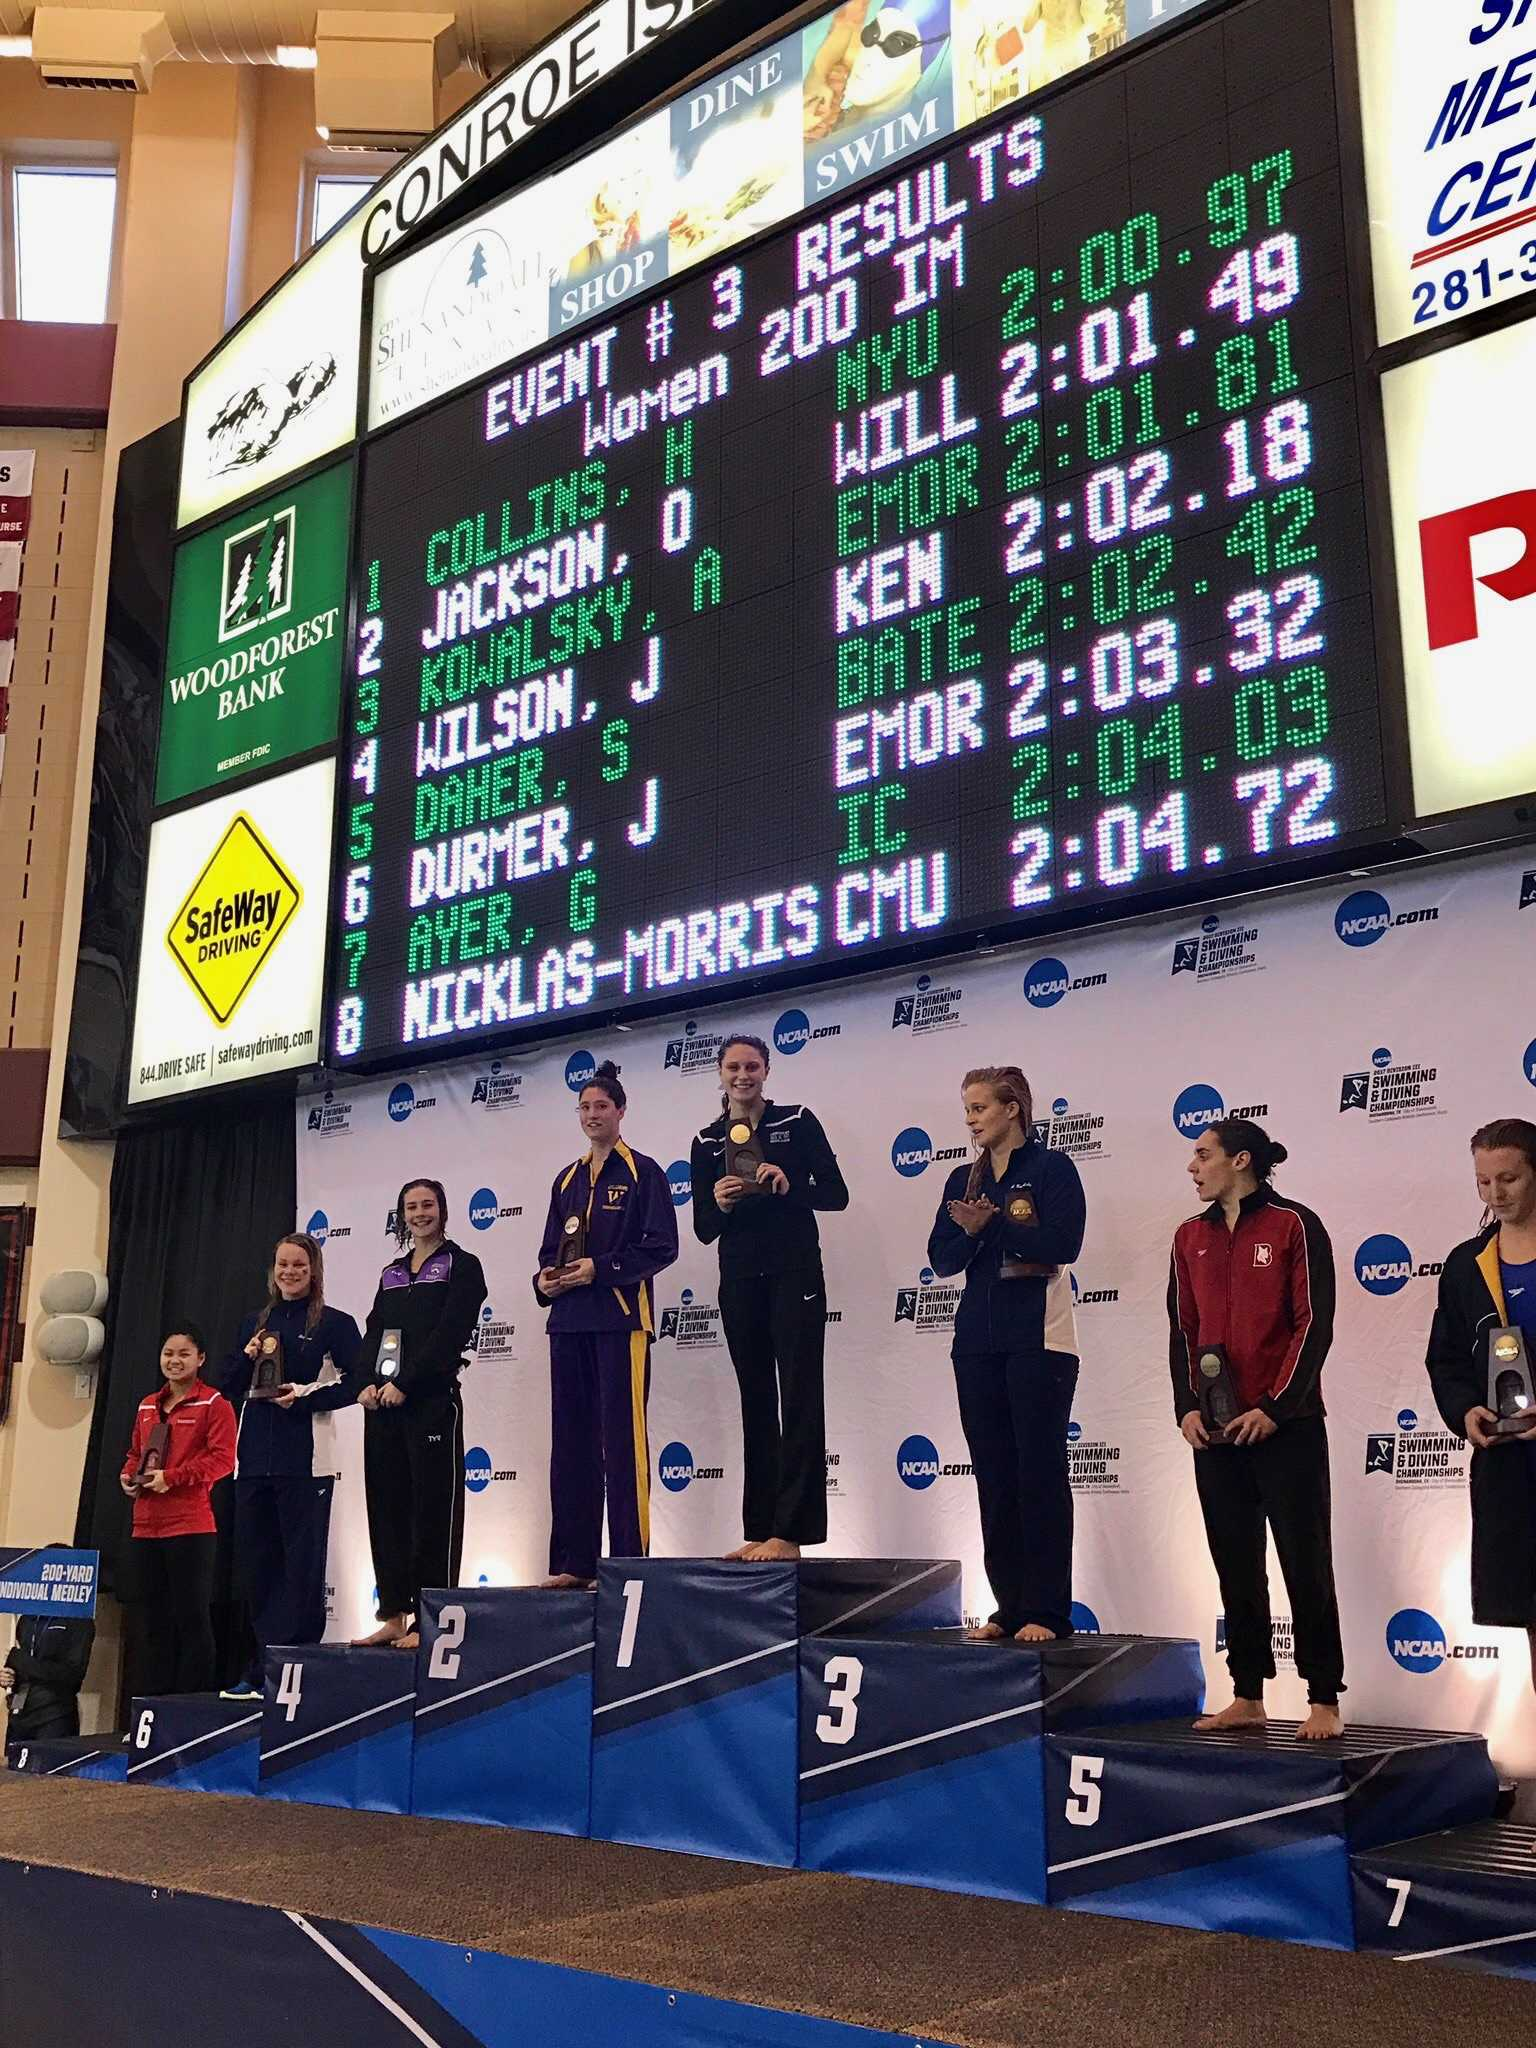 In March, freshman Honore Collins took home the very first national title for NYU swimming. Overall, the NYU women's swimming and diving team earned 8th place at the national tournament.